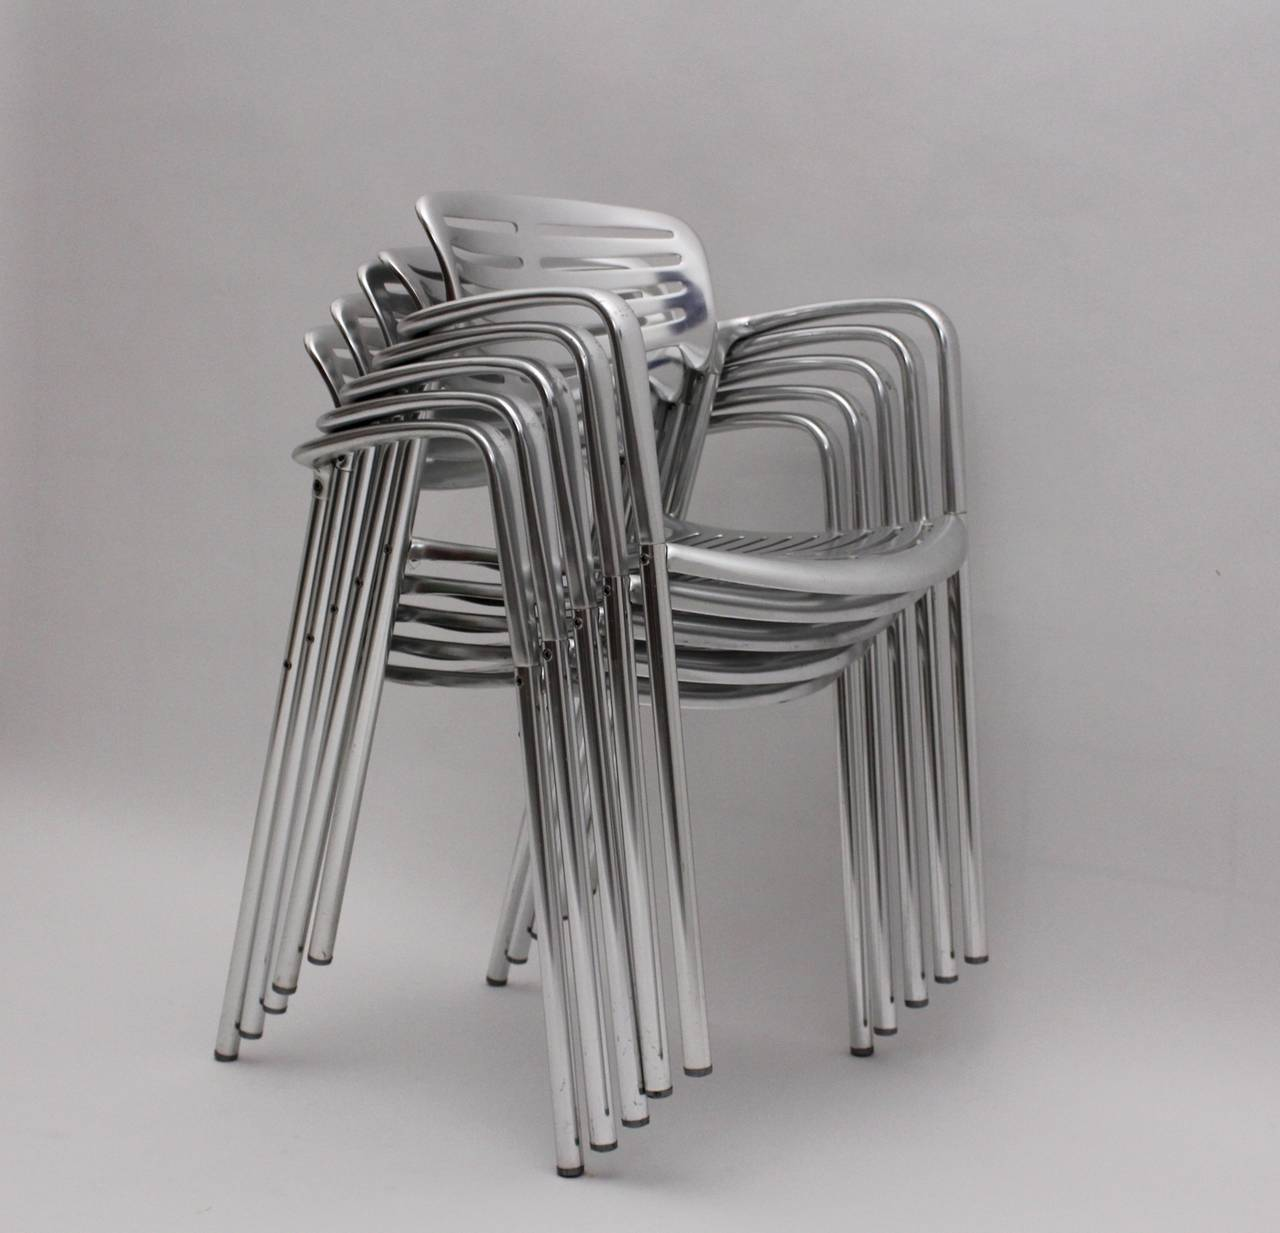 Late 20th Century Modernist Metal Vintage Chairs Toledo by Jorge Pensi  Spain 1986-1988 For Sale